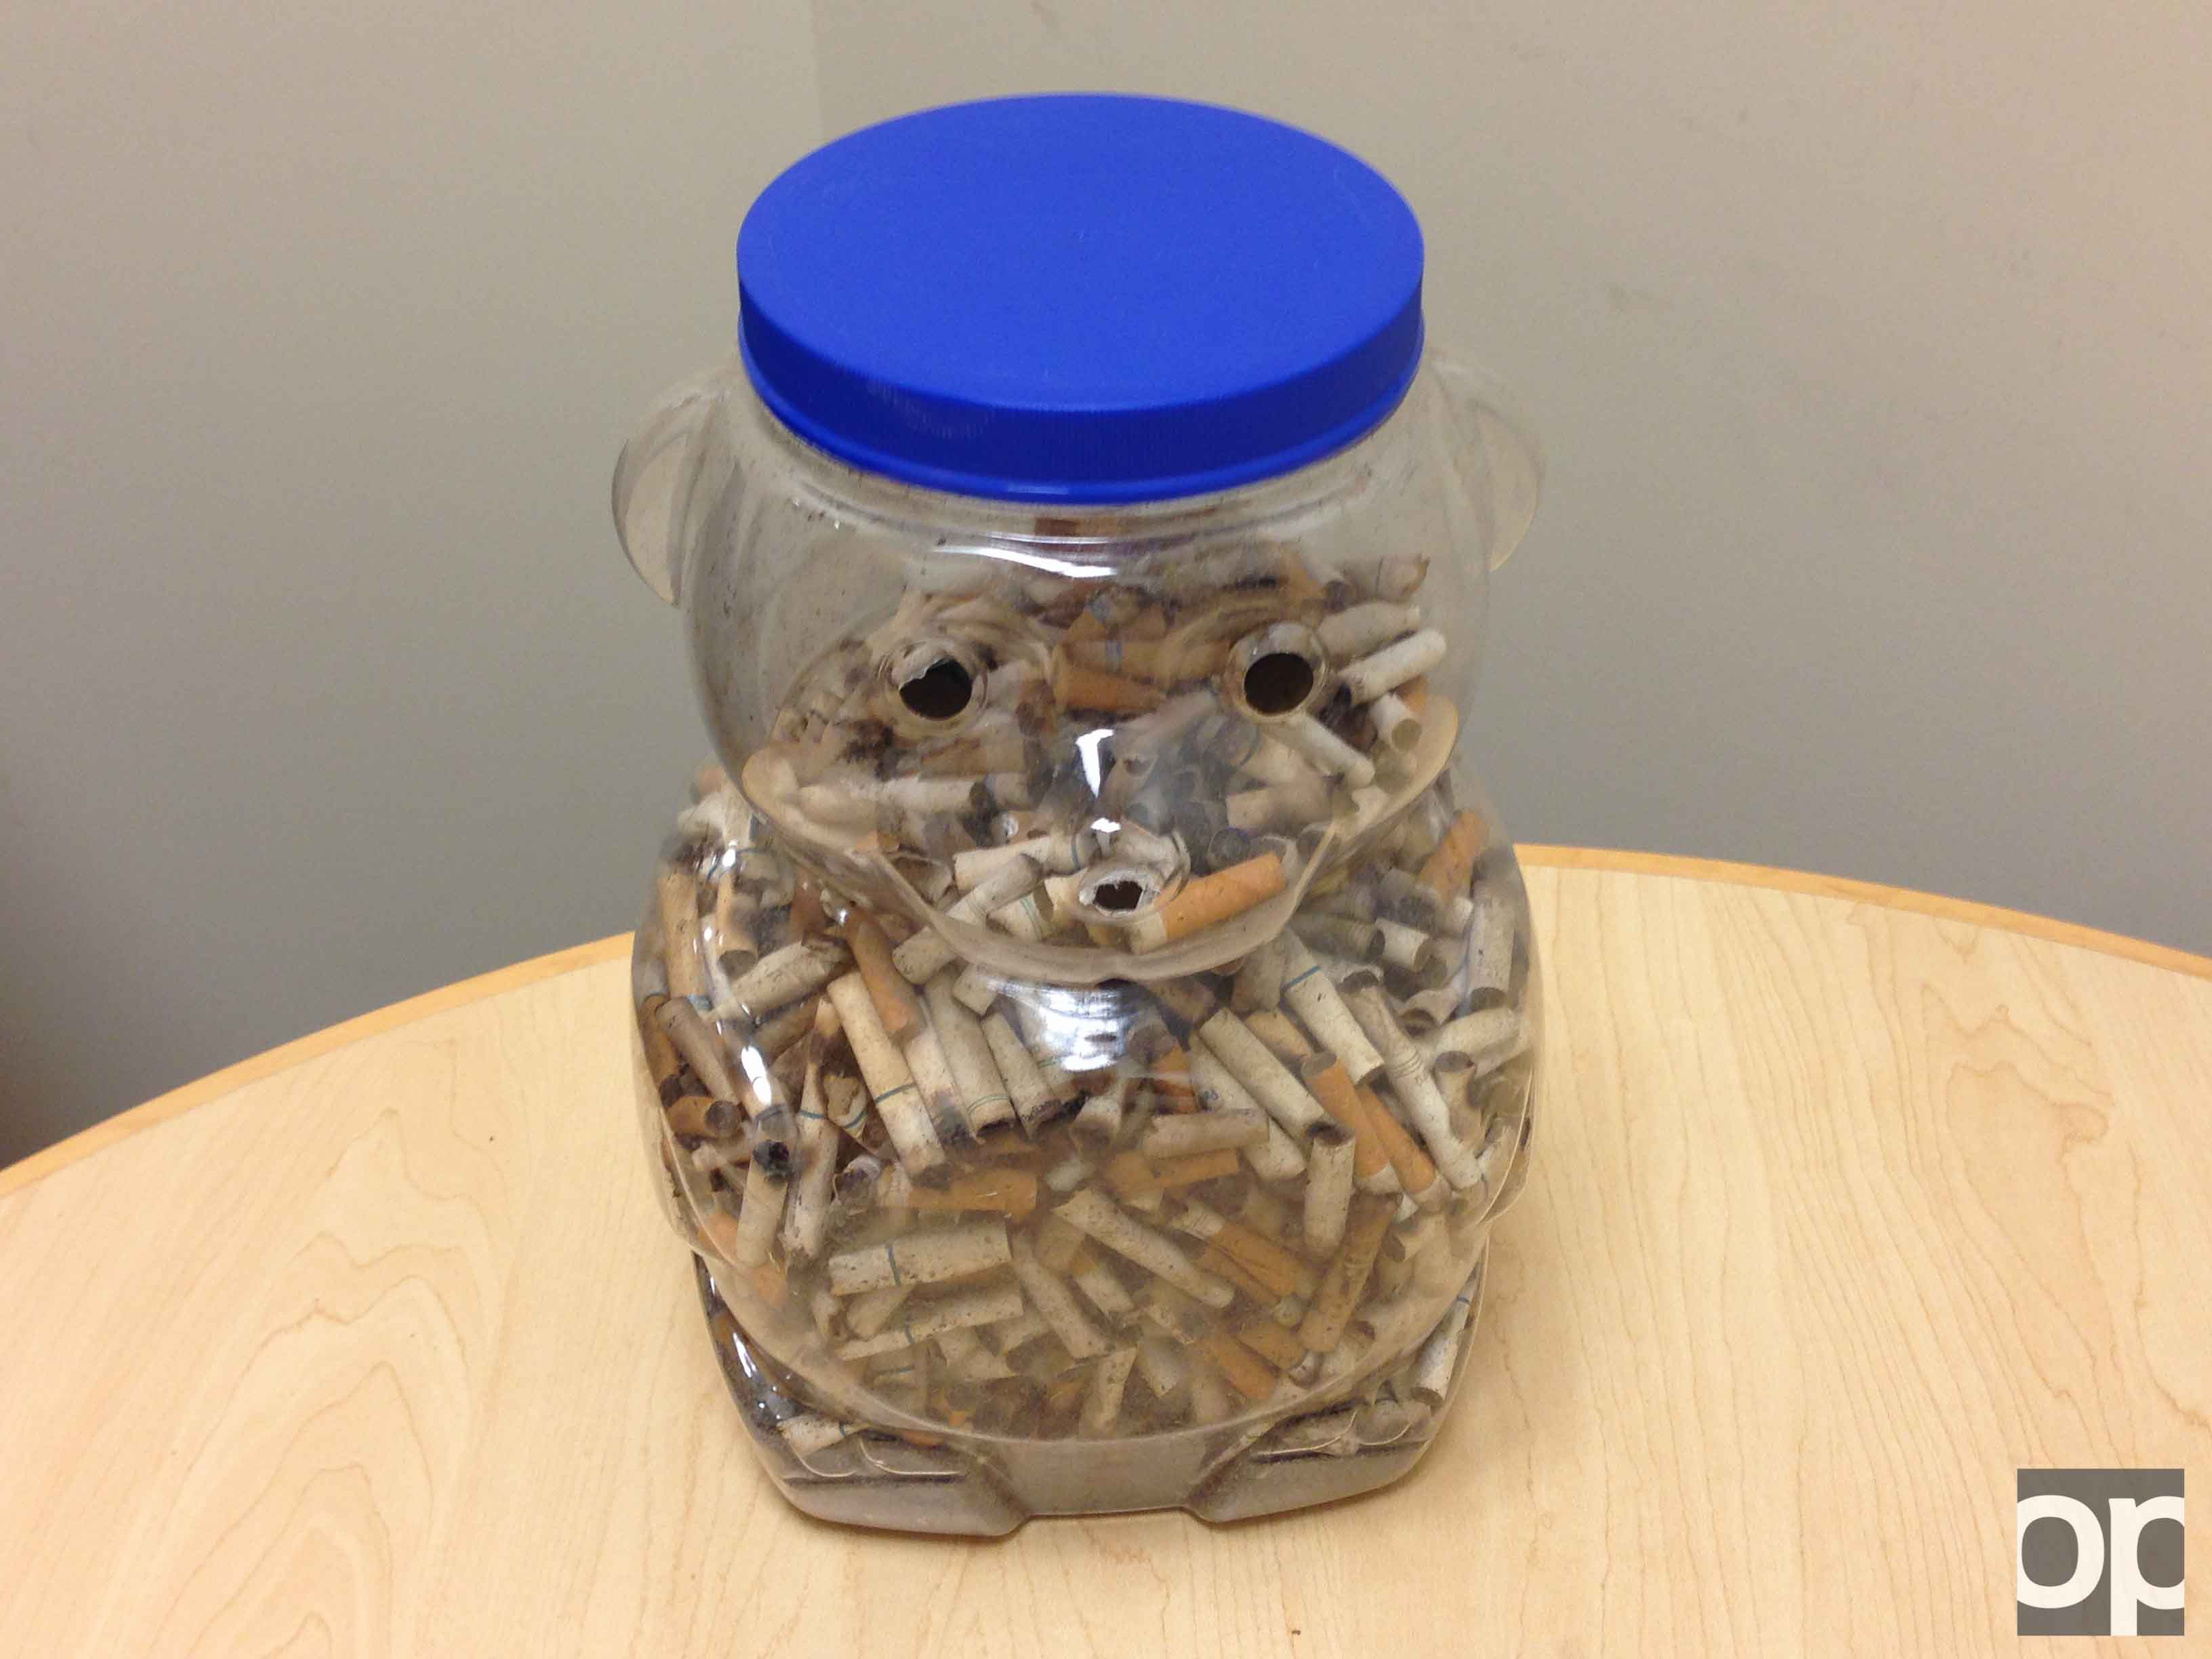 Health and Wellness Coordinator Erica Wallace collected used cigarettes around campus within an hour that almost filled up the bear jar on her desk.